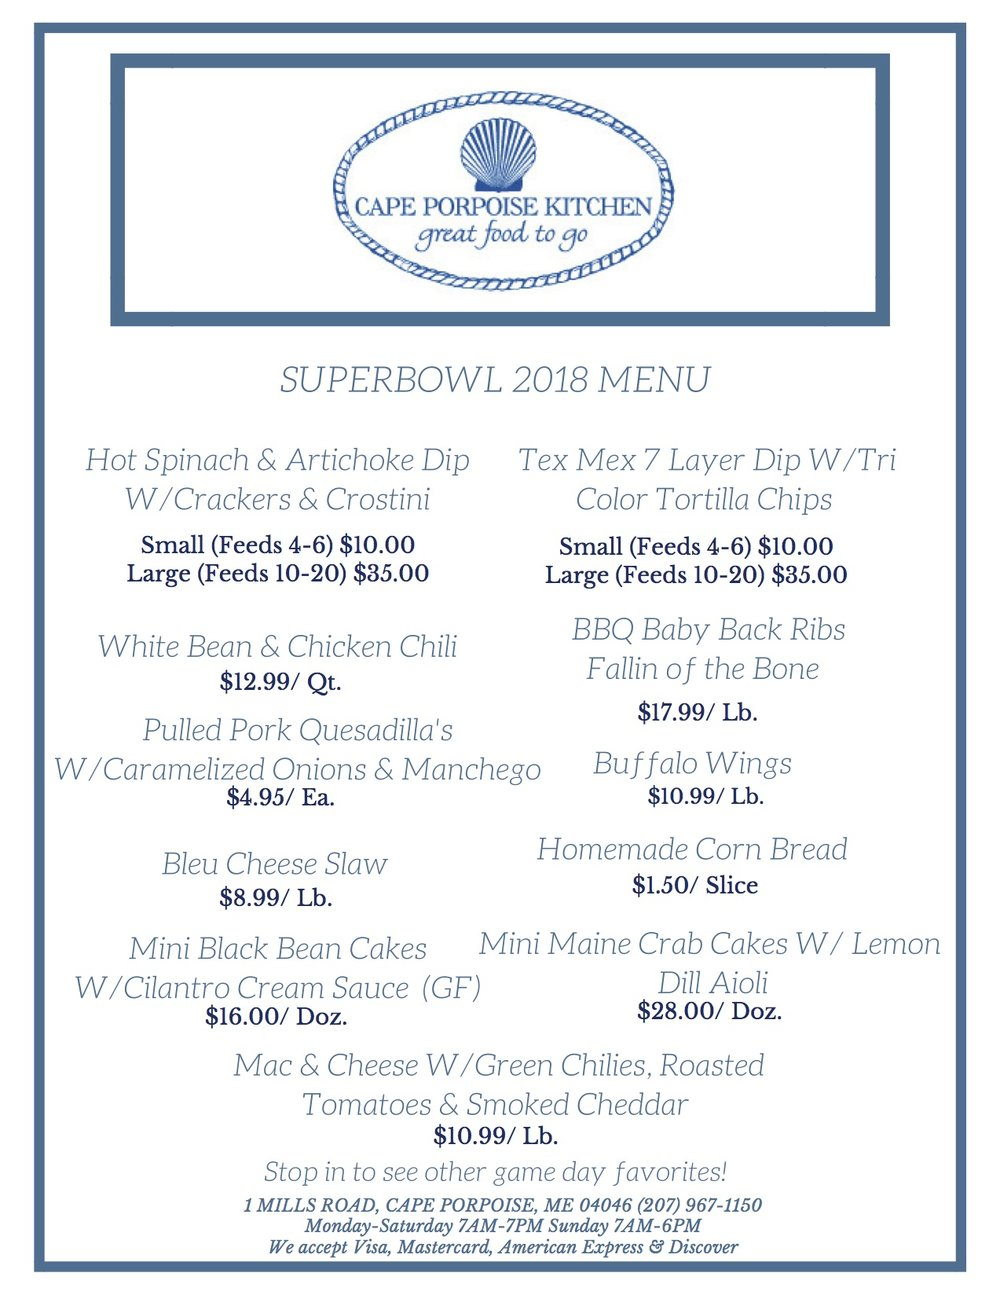 Superbowl 2018 Menu.jpg